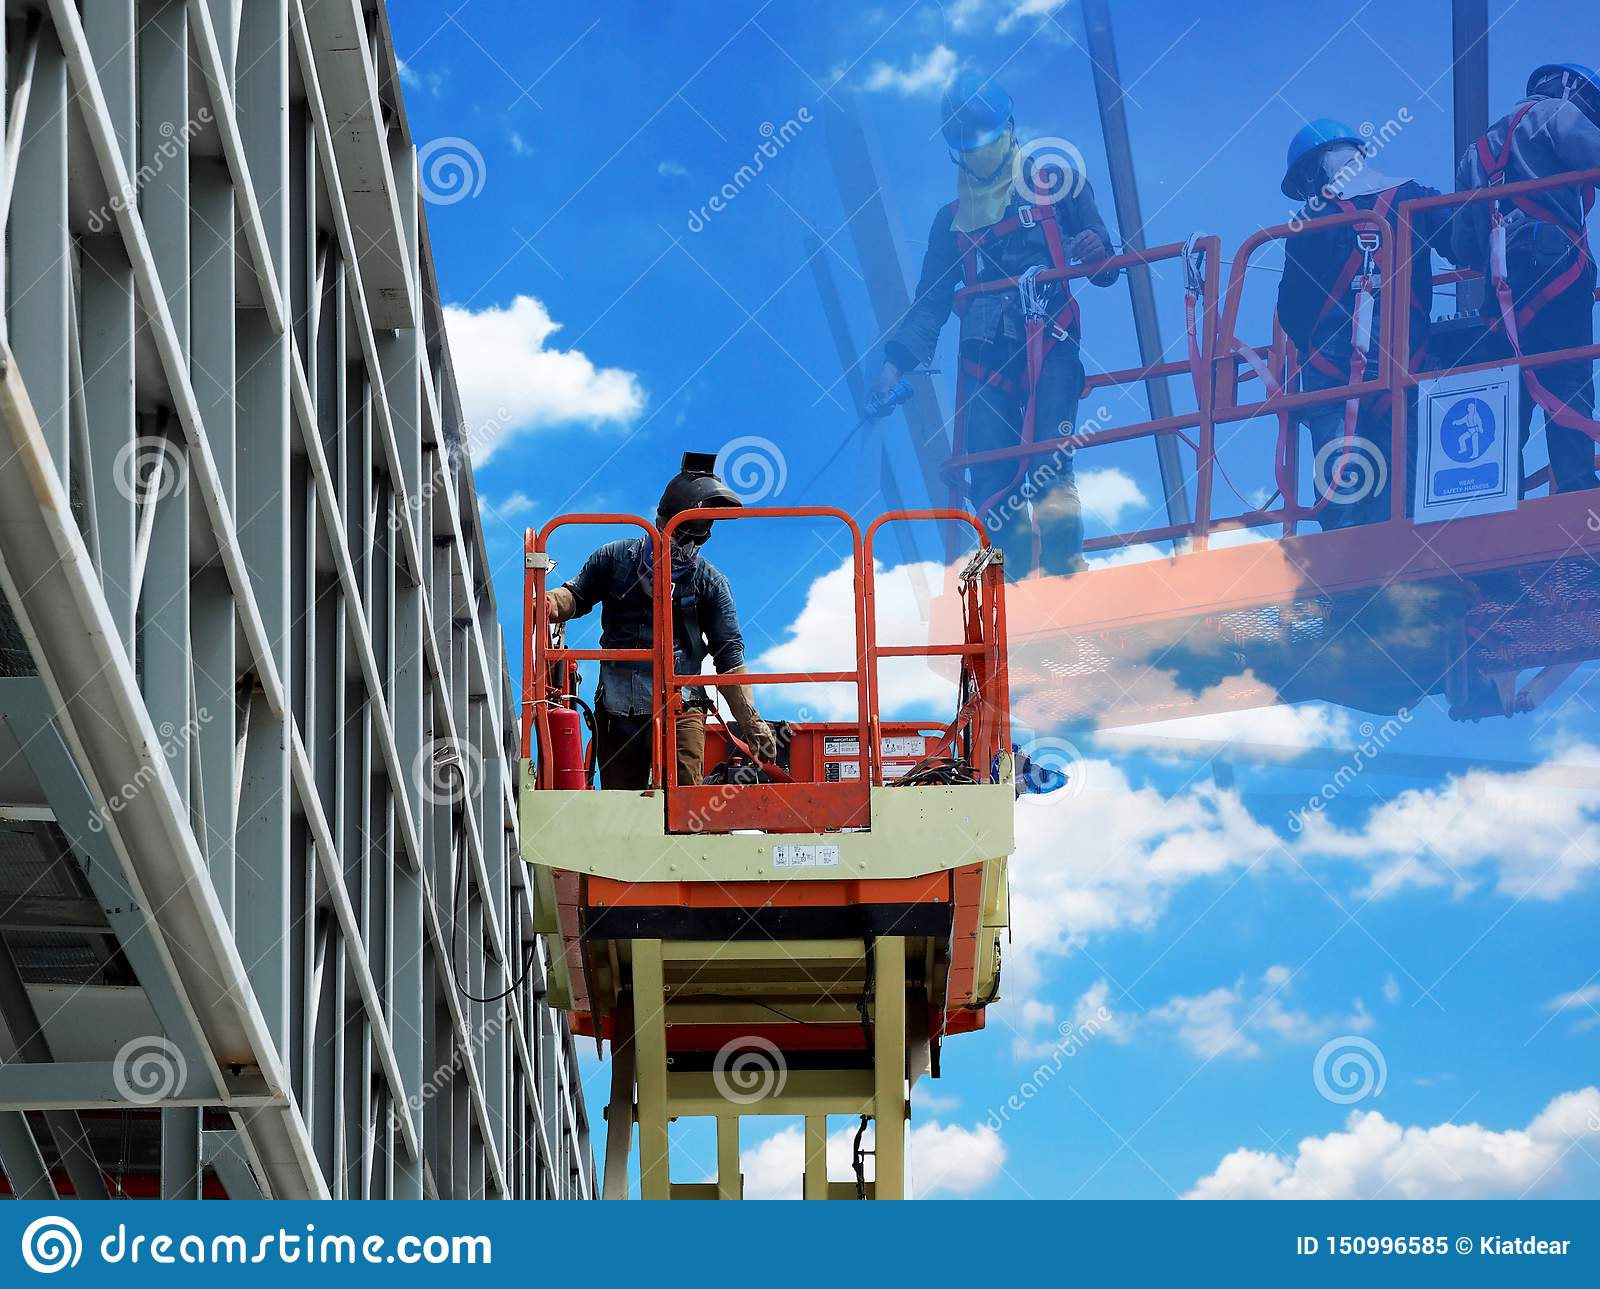 Man Working on the Working at height